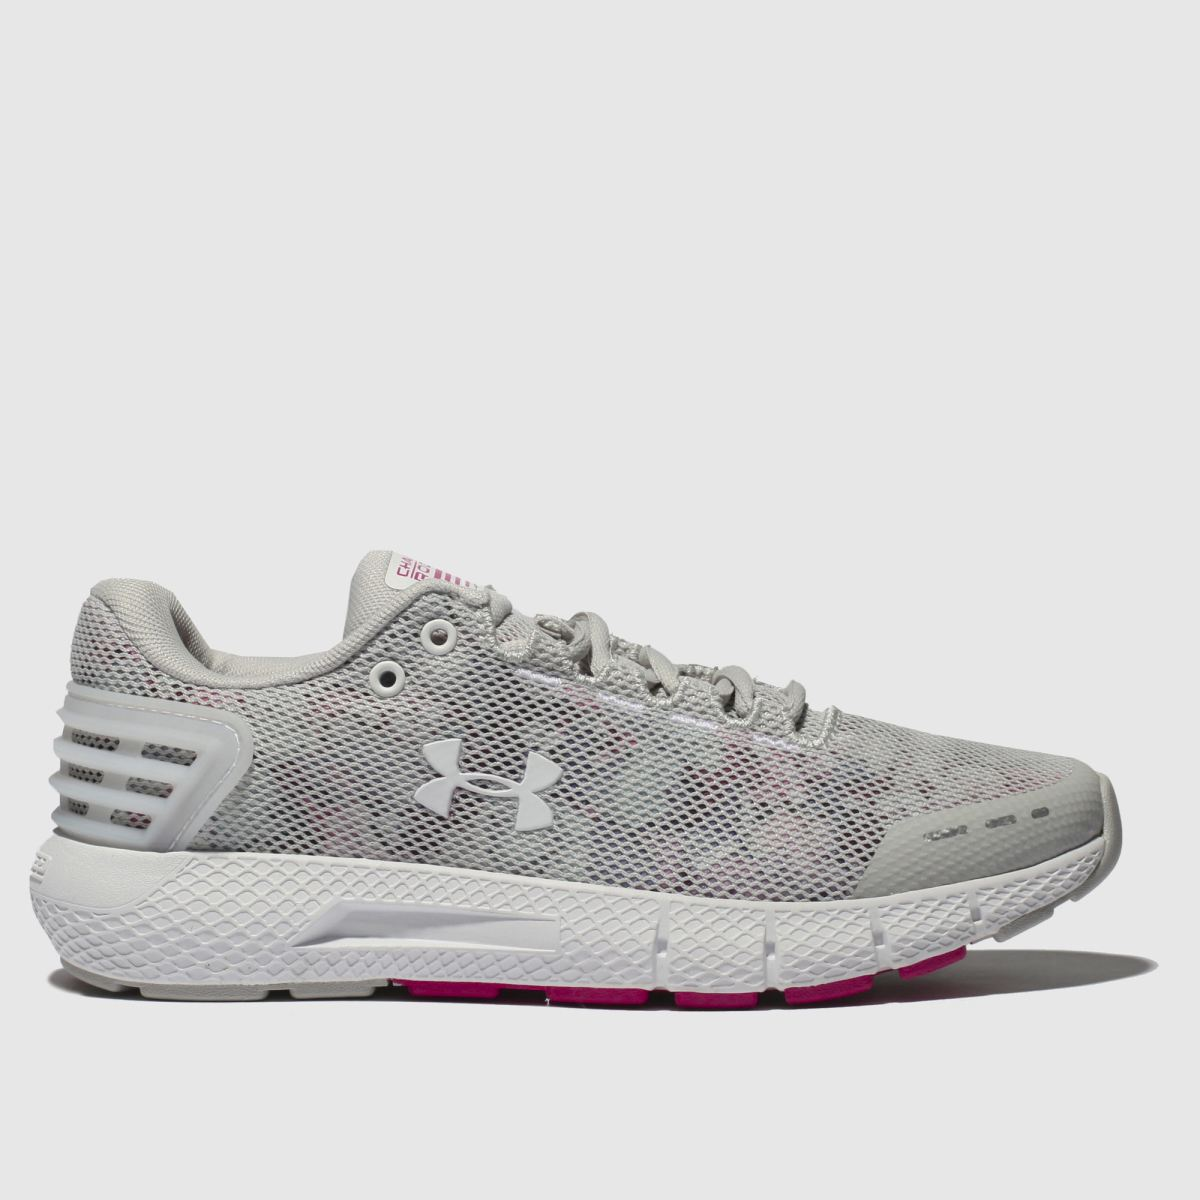 Under Armour Light Grey Charged Rogue Amp Trainers